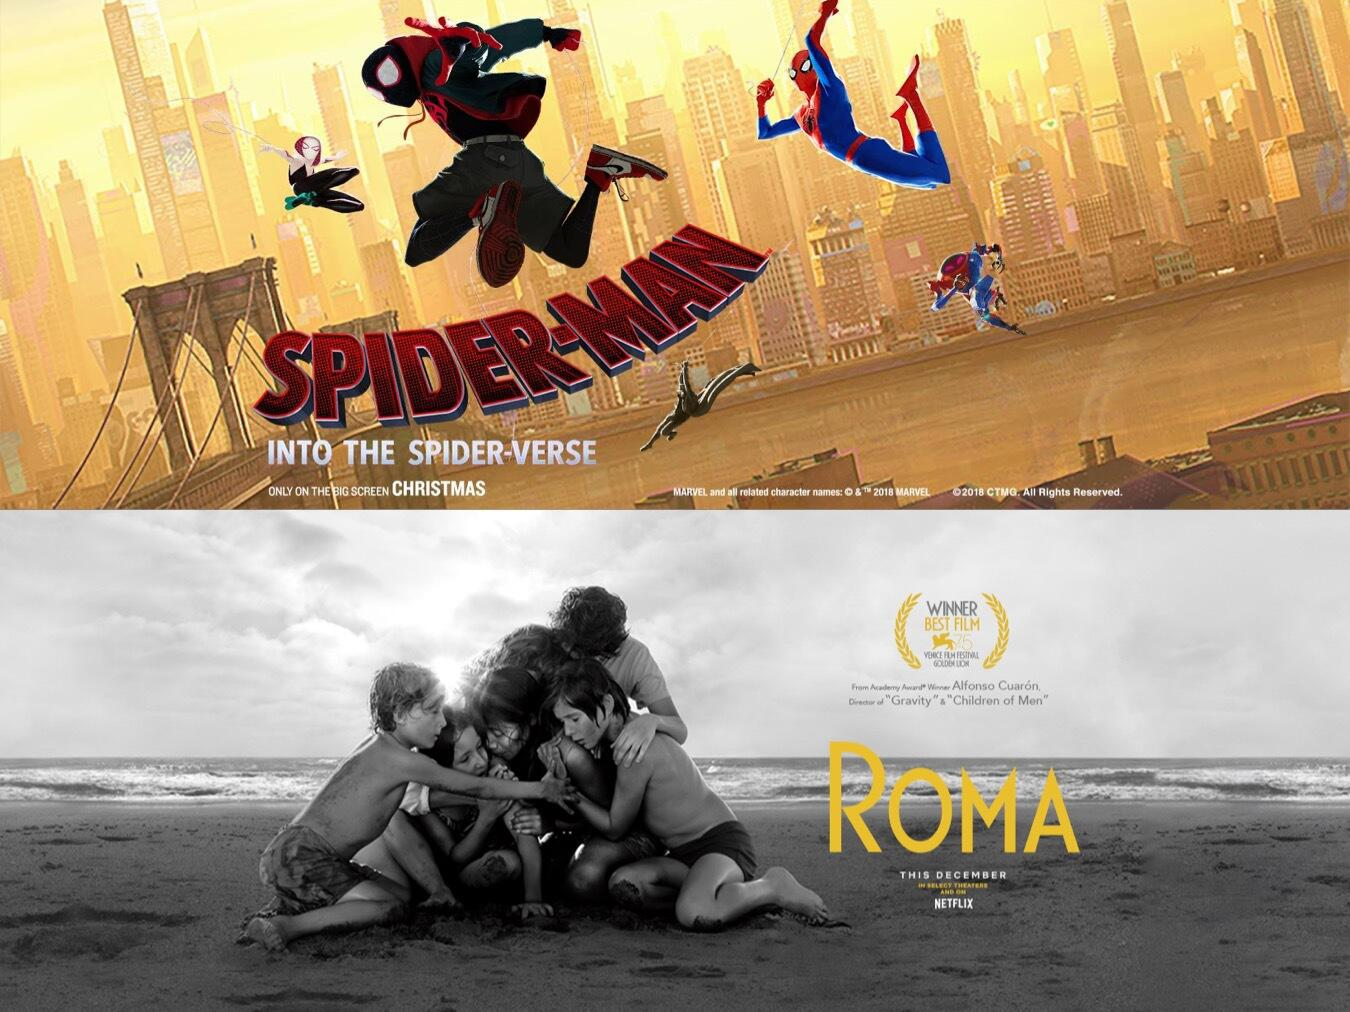 Audioboom / Out Now 347: Spider-Man: Into The Spider-Verse & Roma